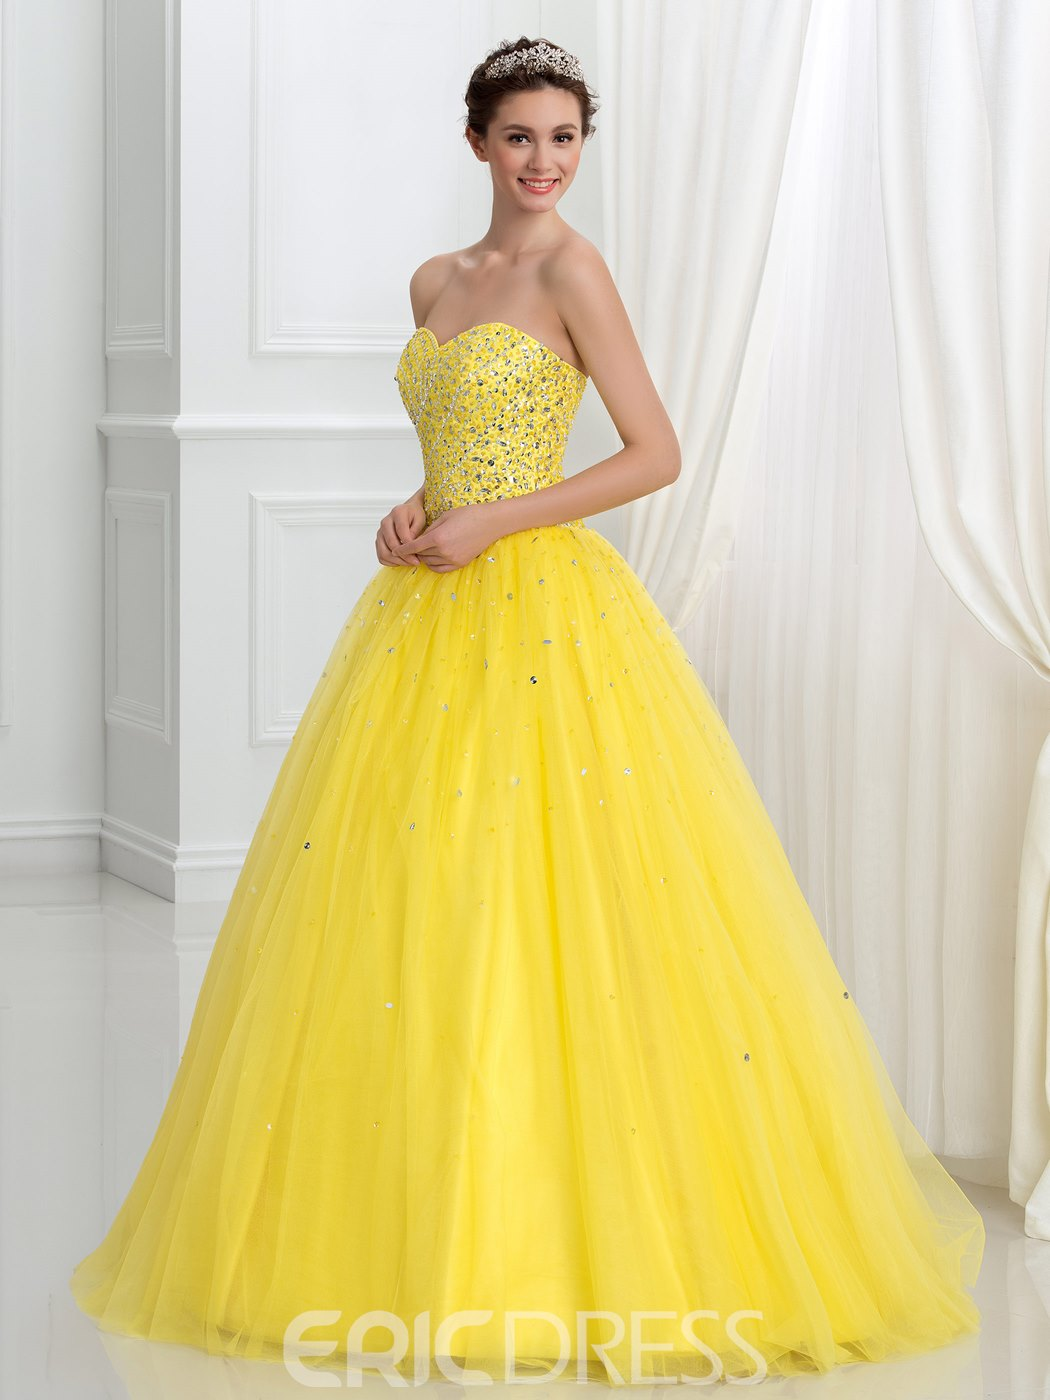 Ericdress Sweetheart perles Sequins Lace-Up robe de Quinceanera